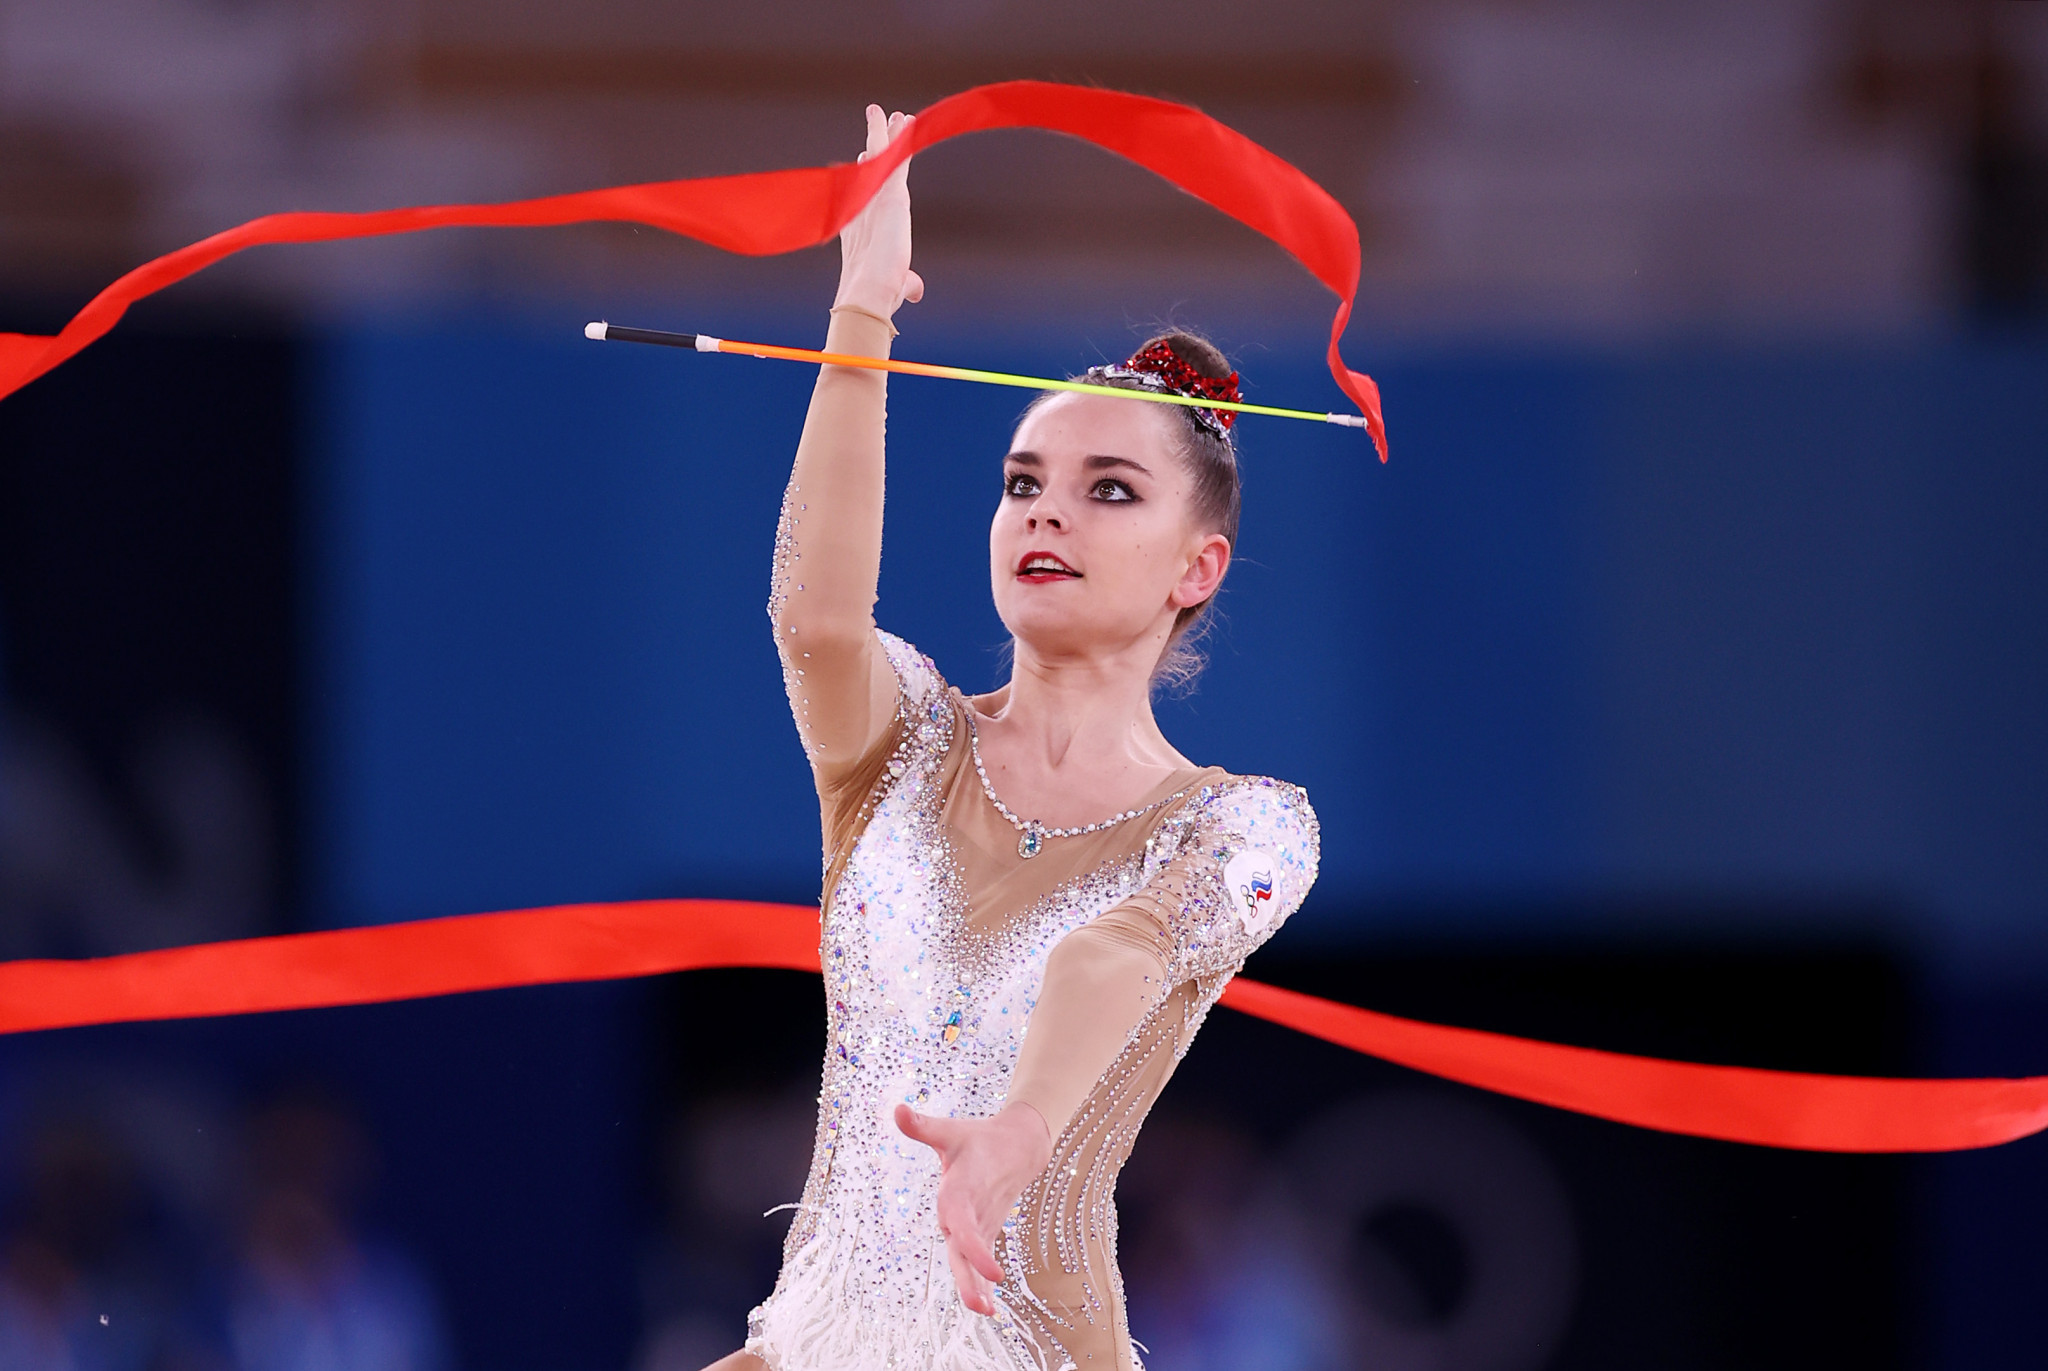 Tokyo 2020 was Dina Averina's first Olympic Games ©Getty Images